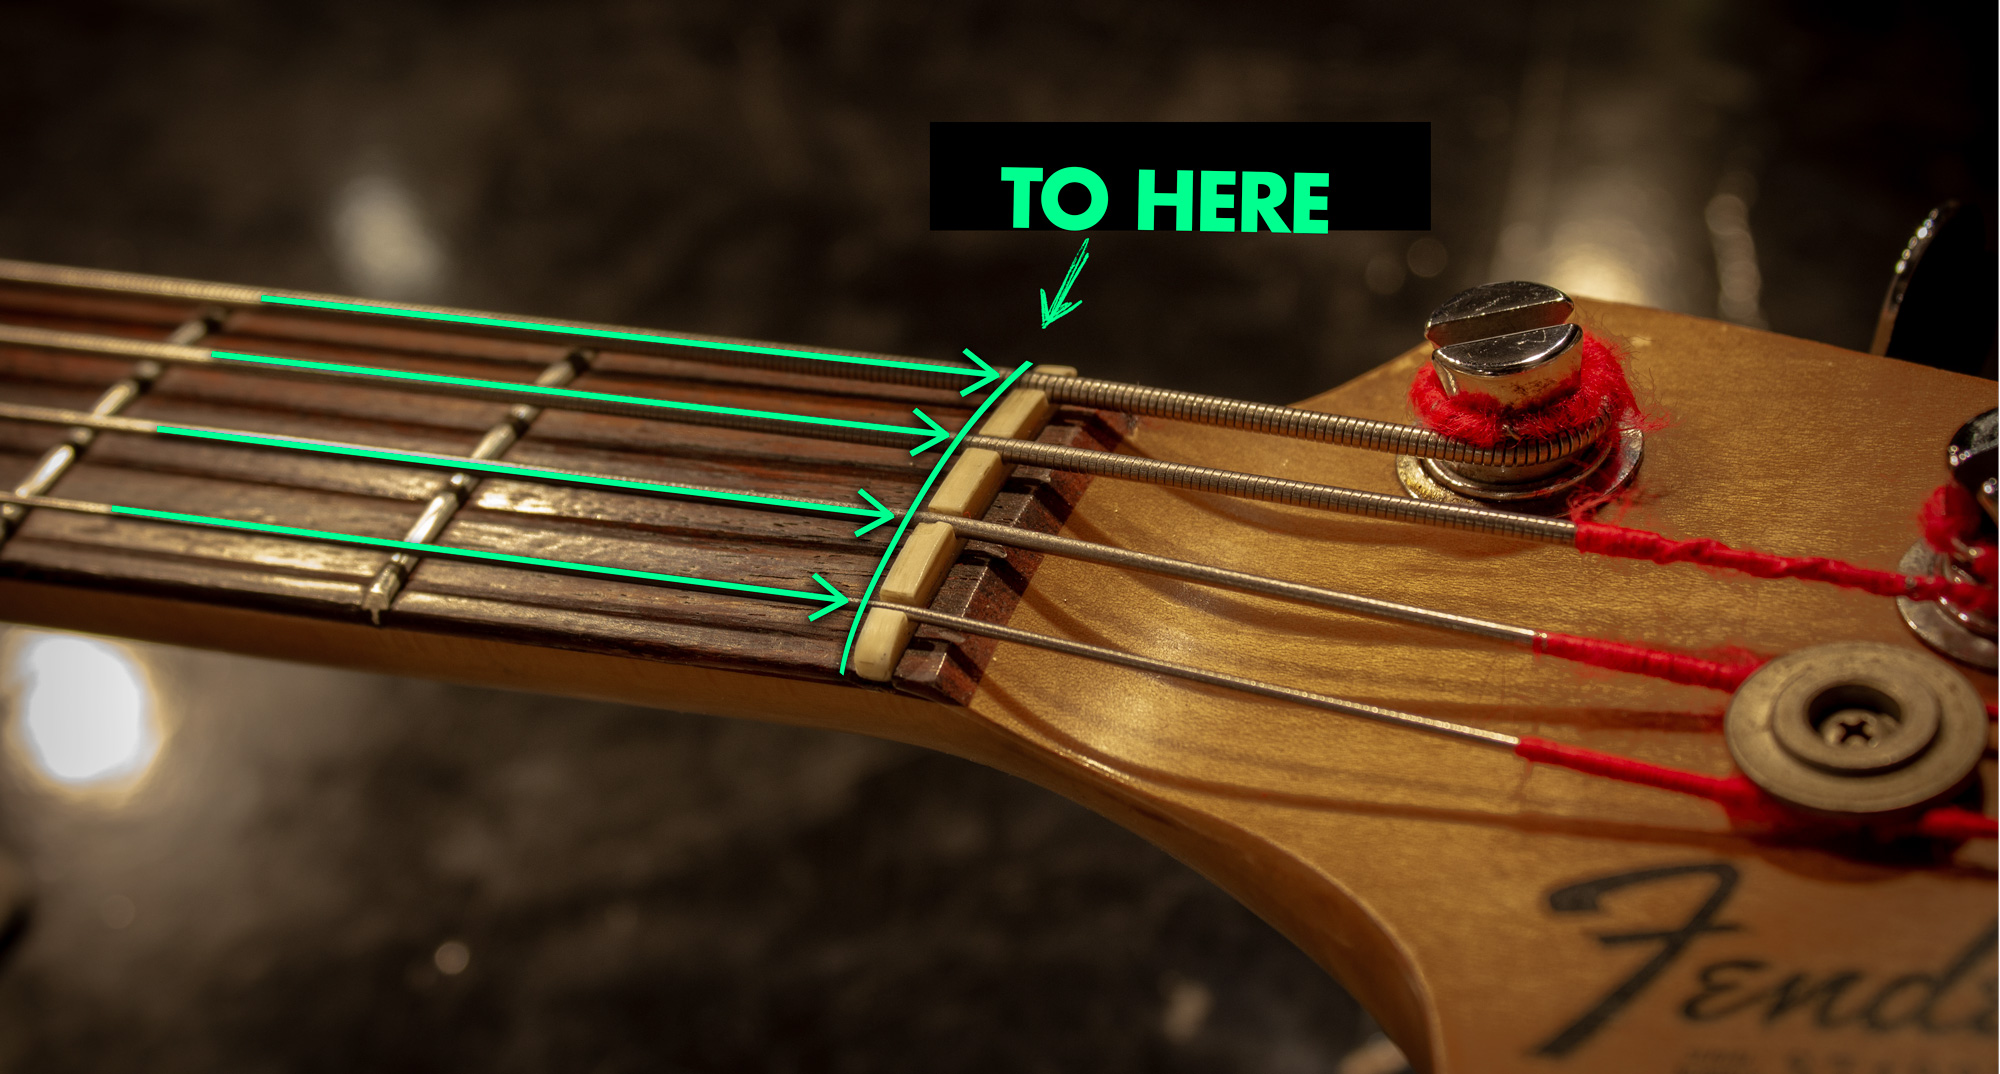 Measure your strings to here